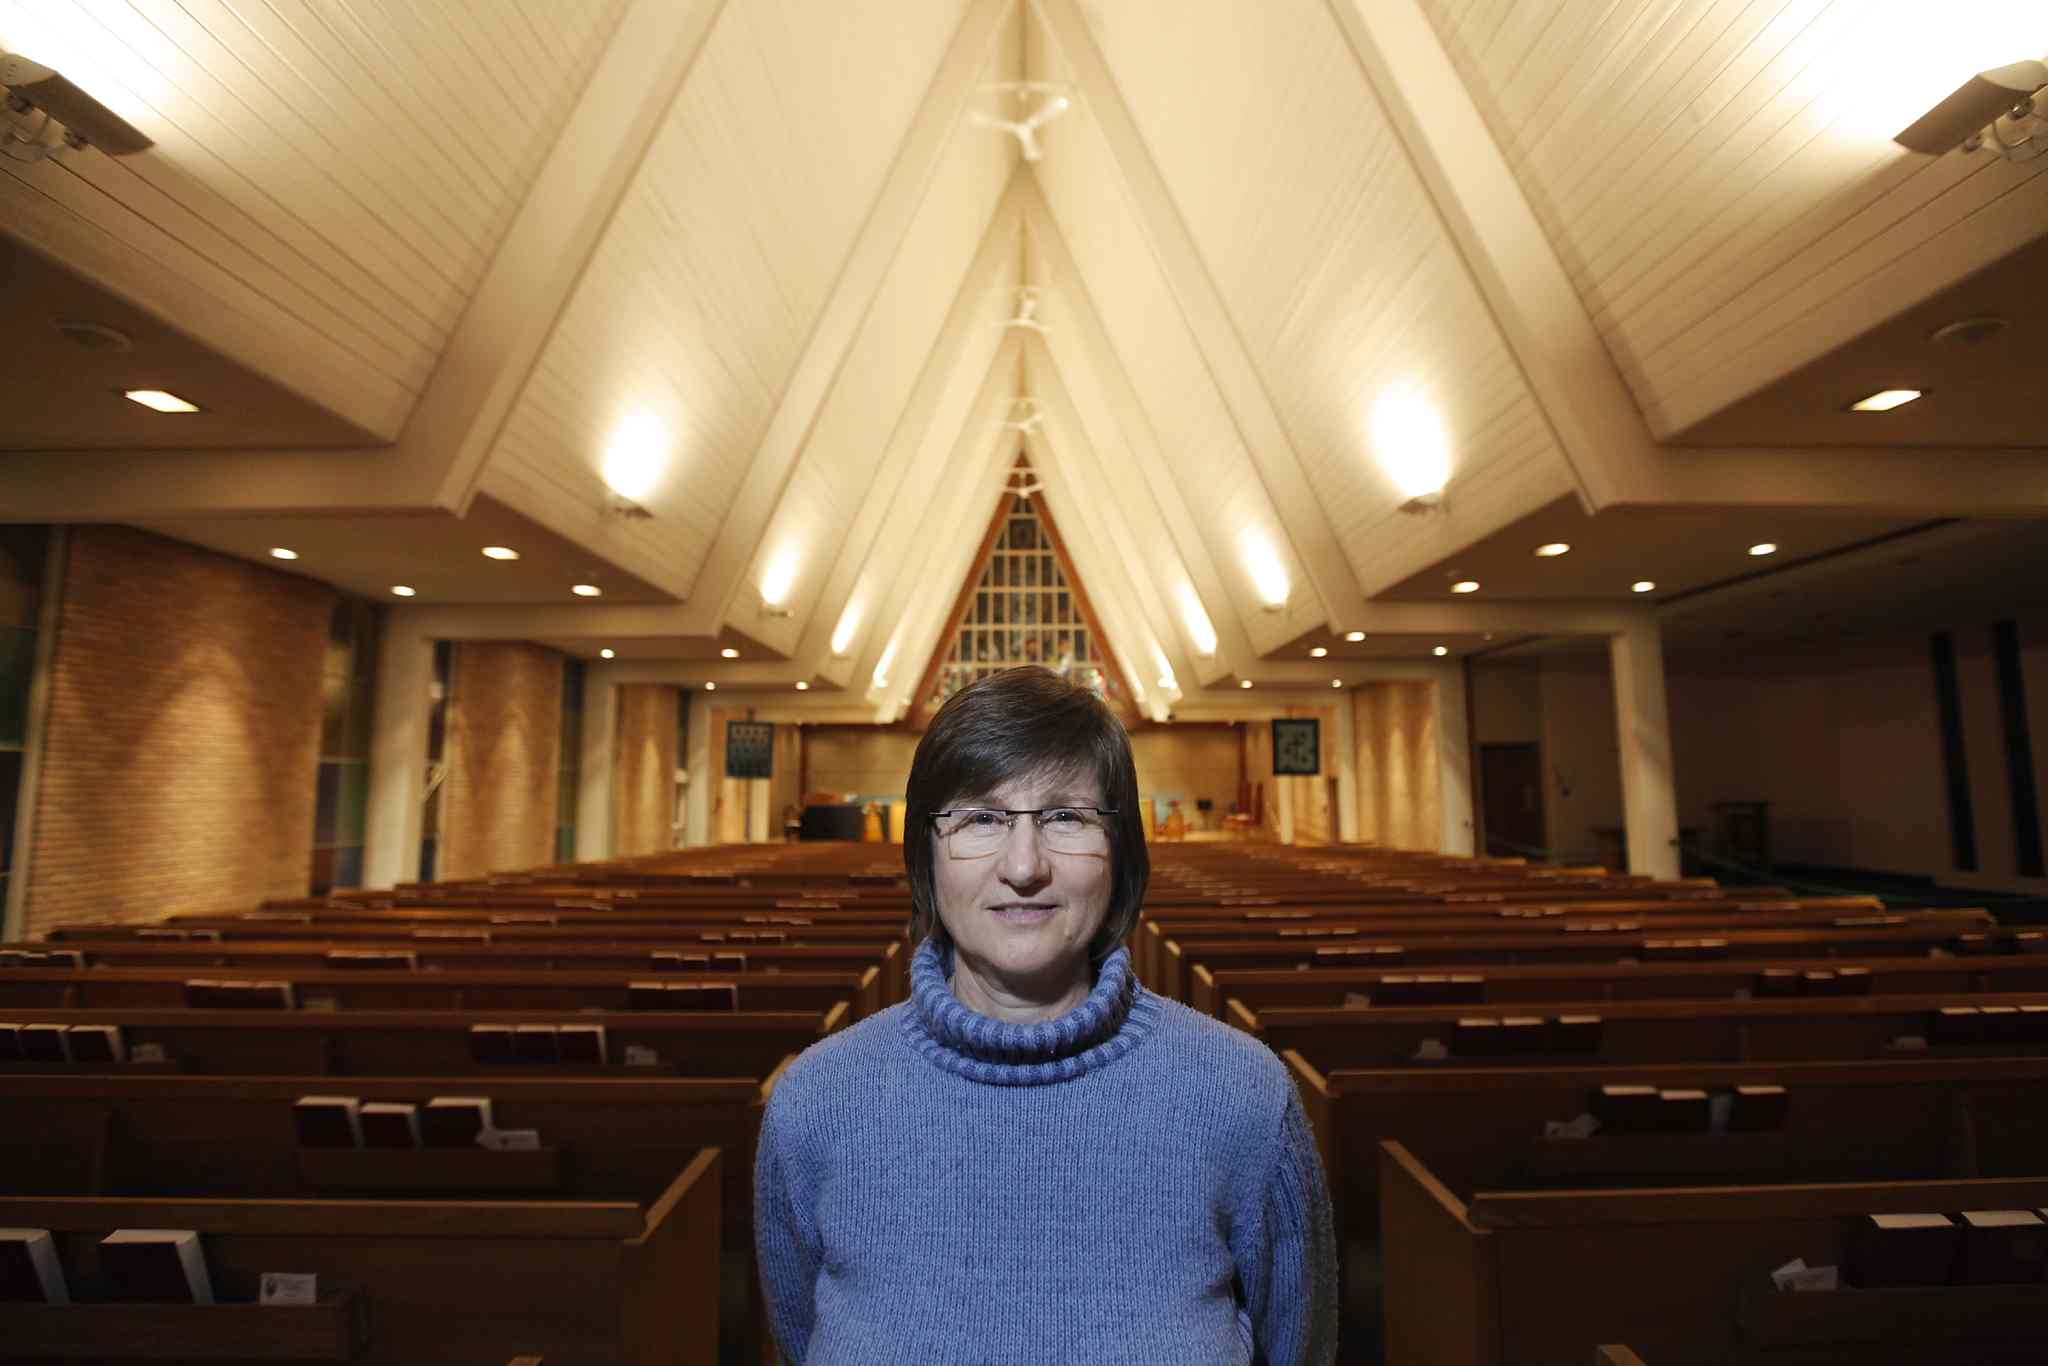 Loraine MacKenzie Shepard, minister at Westworth United Church, and her congregation are helping Syrian refugee families to enter Canada. MacKenzie Shepard is photographed in her church Sunday.